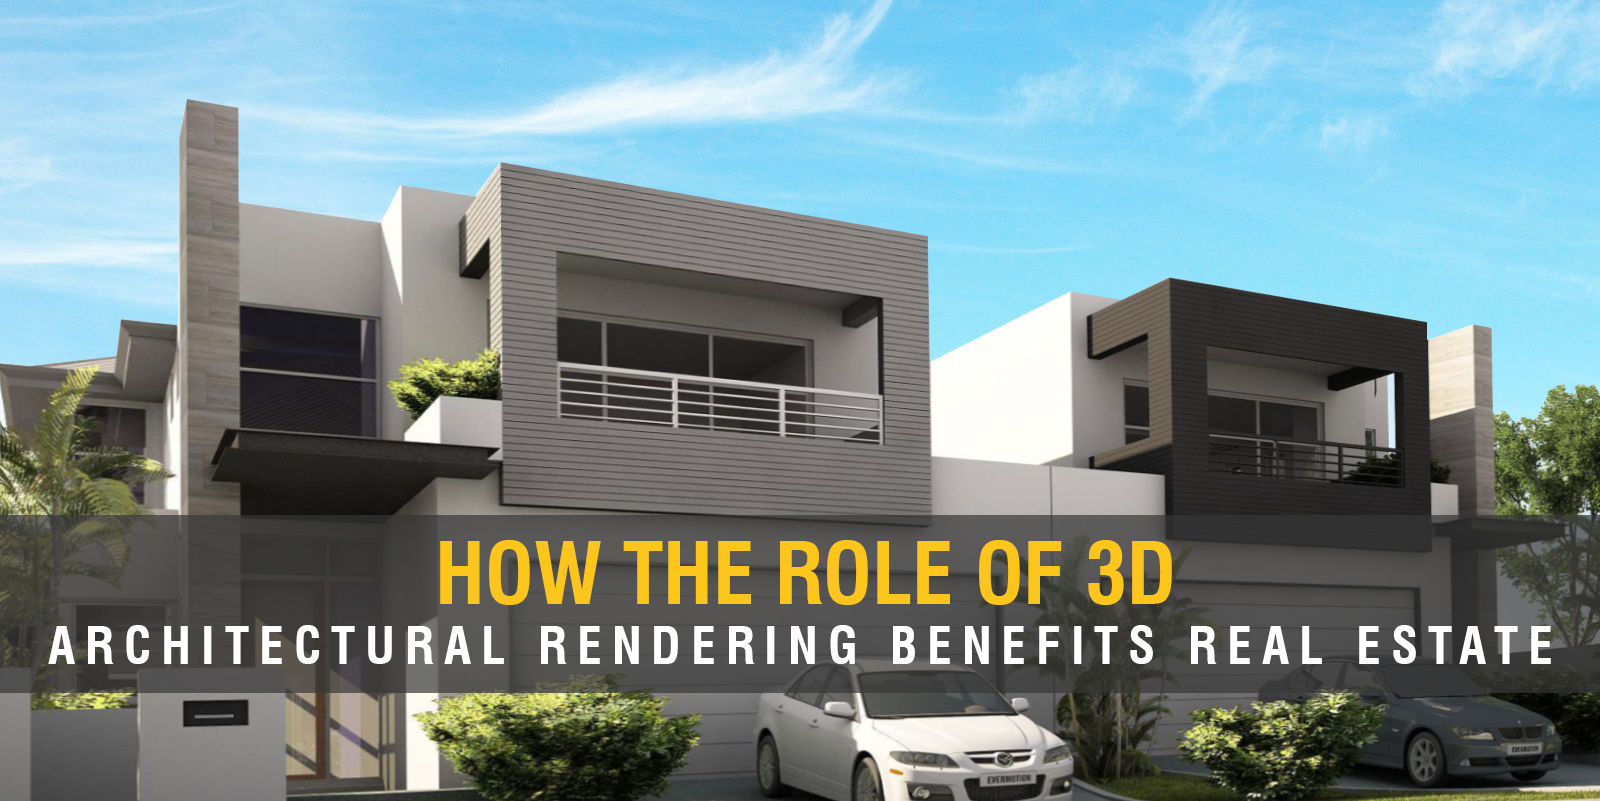 Pixerio Solutions Blog: How the Role of 3D Architectural Rendering Benefits Real Estate